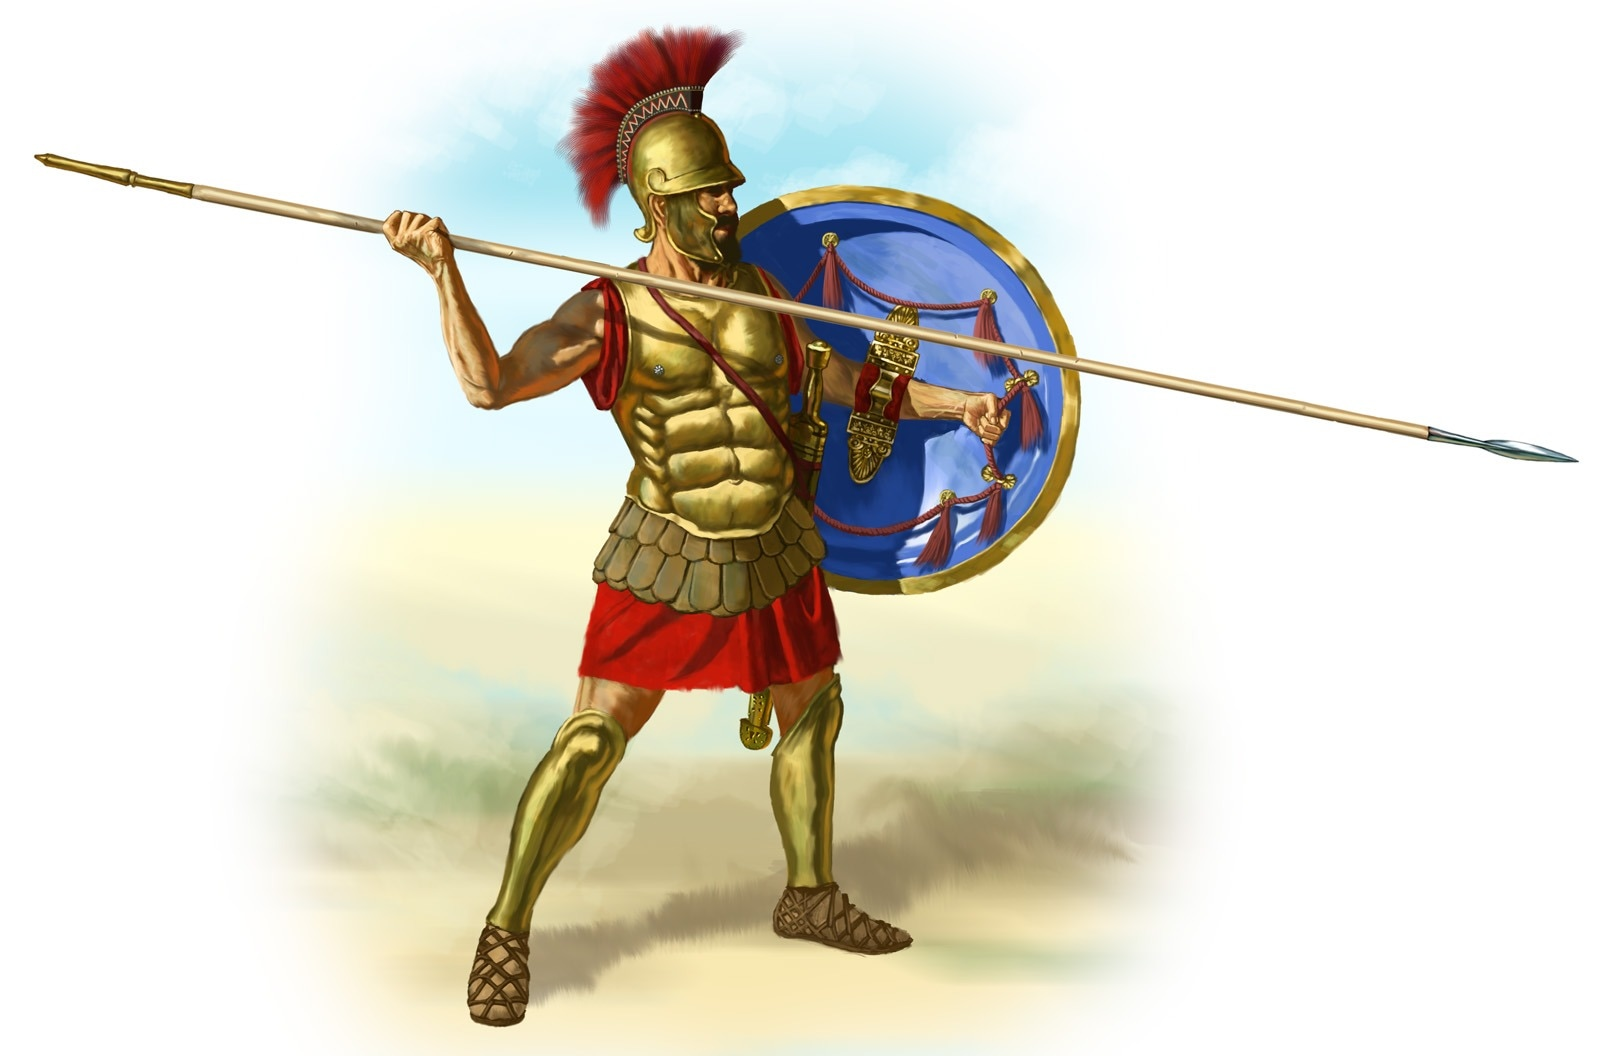 Picture Of A Roman Soldier | Free download best Picture Of A Roman